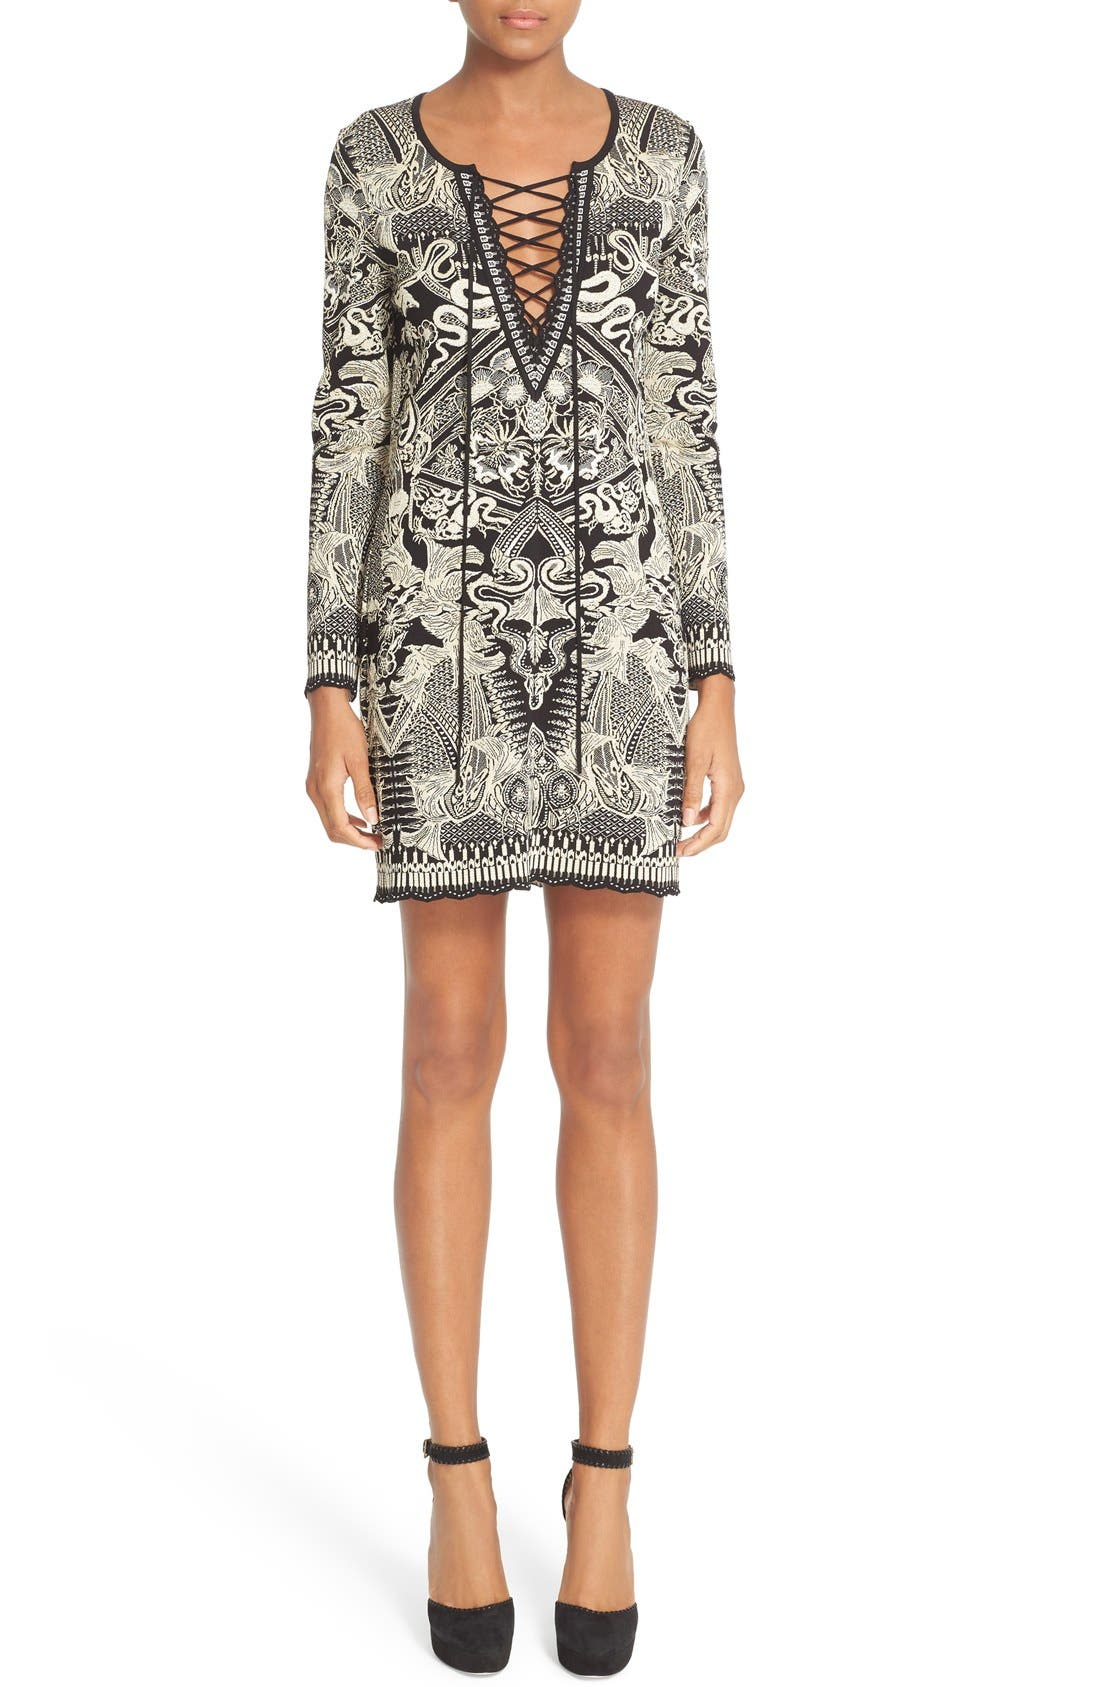 ROBERTO CAVALLI Lace-Up Jacquard Dress